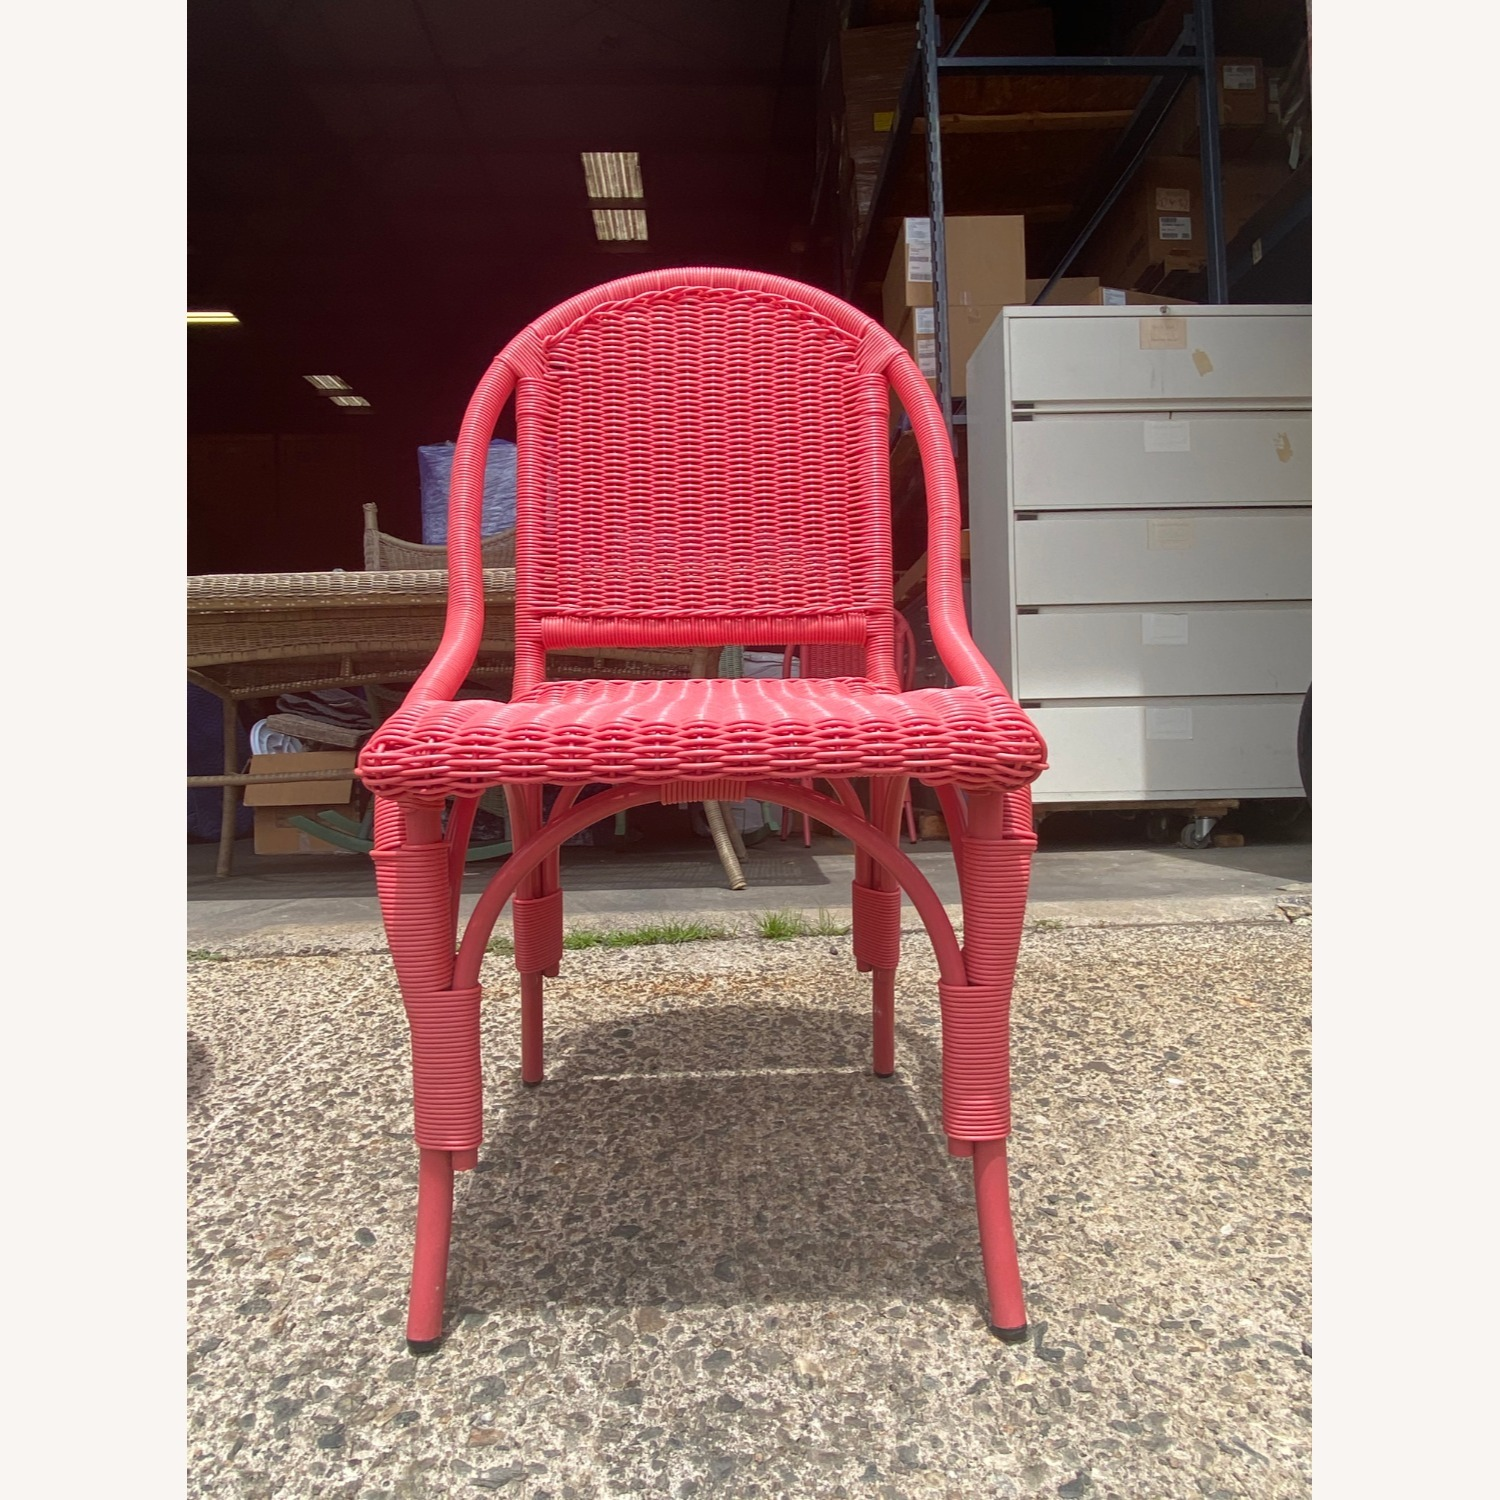 Two Maine Cottage Pink Outdoor Wicker Chairs - image-1